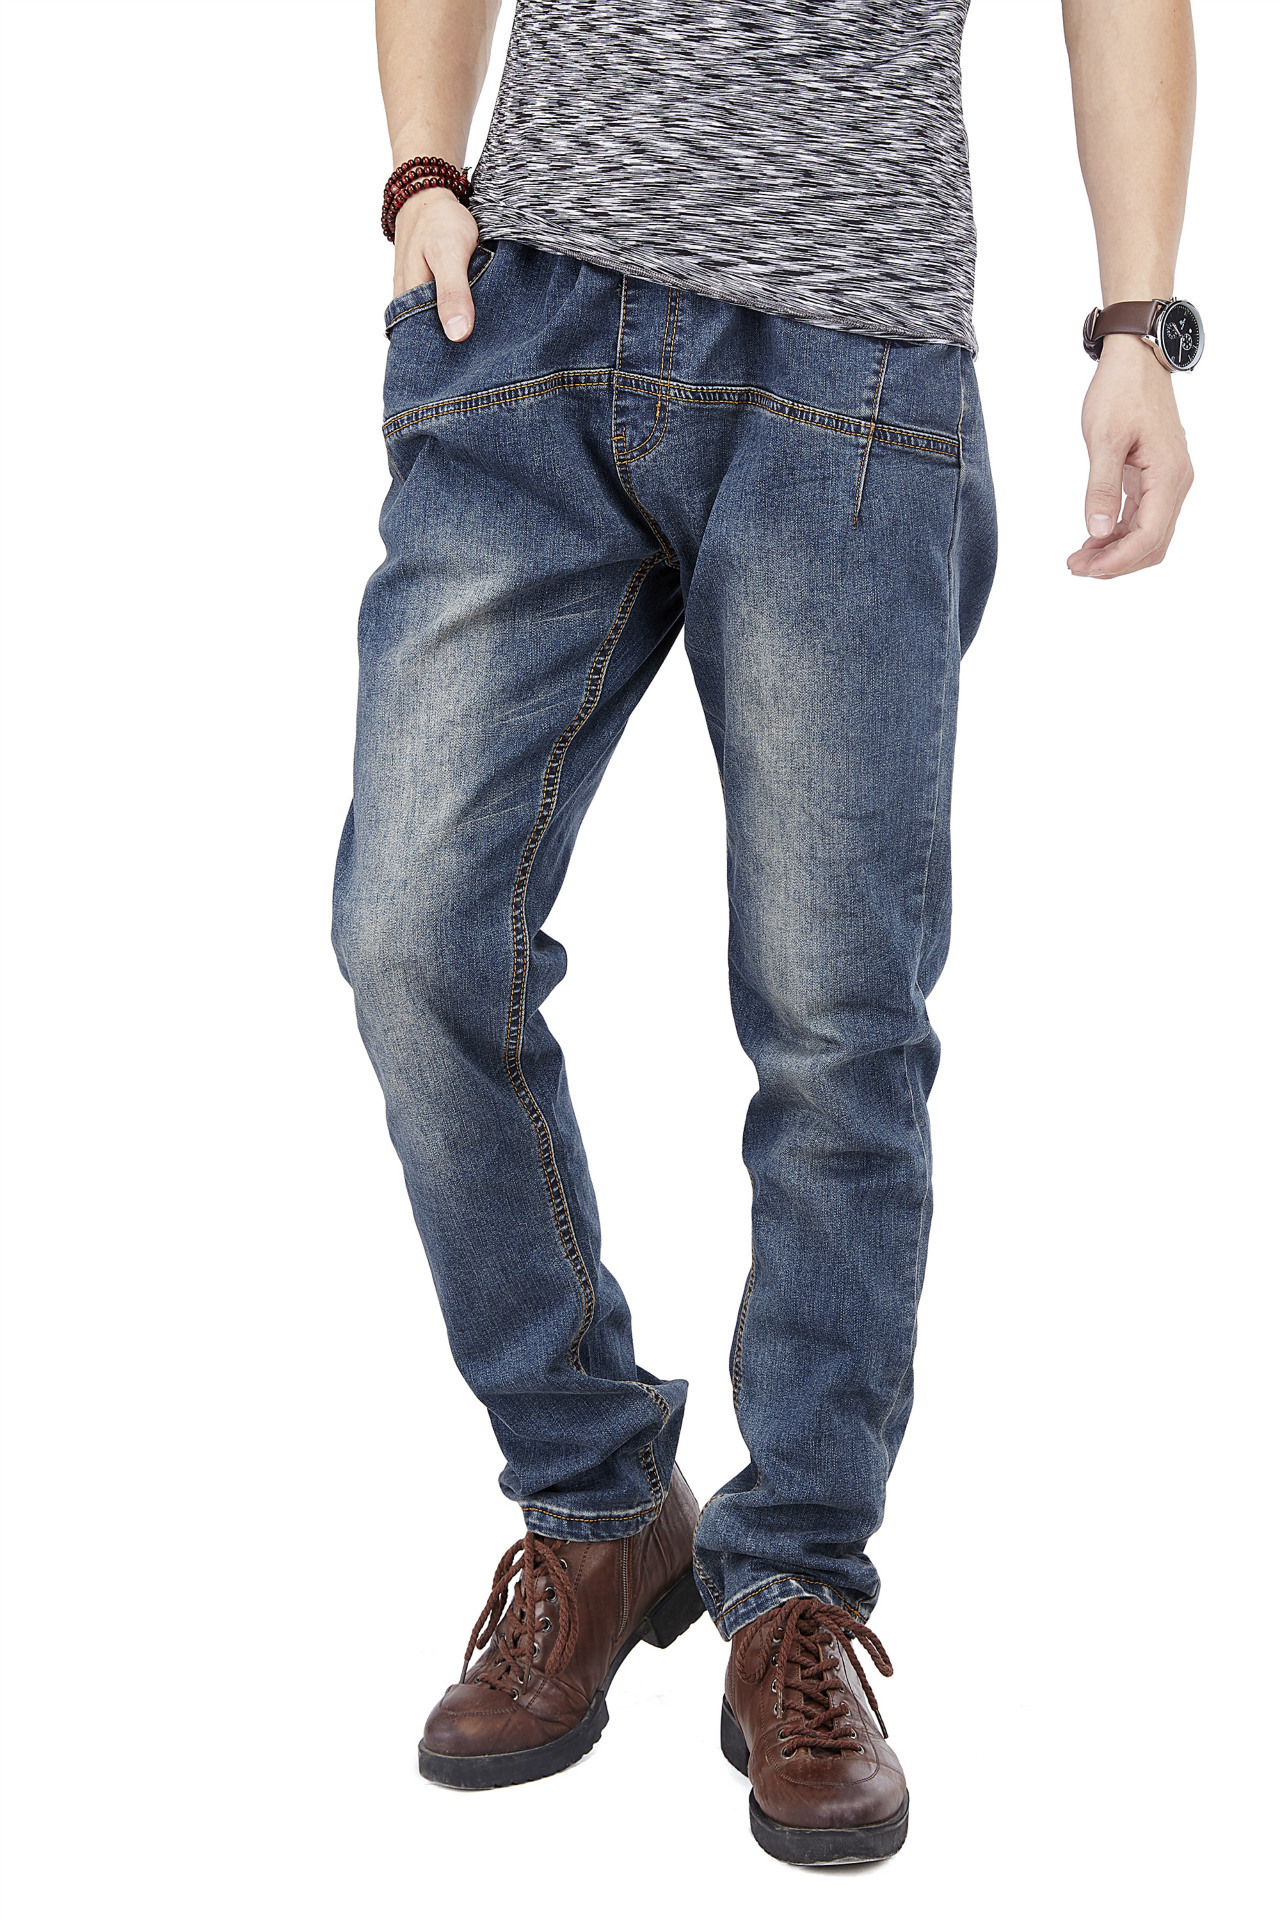 1935 # Spring and summer mens light-colored jeans with slim elastic casual loose straight pants big yards